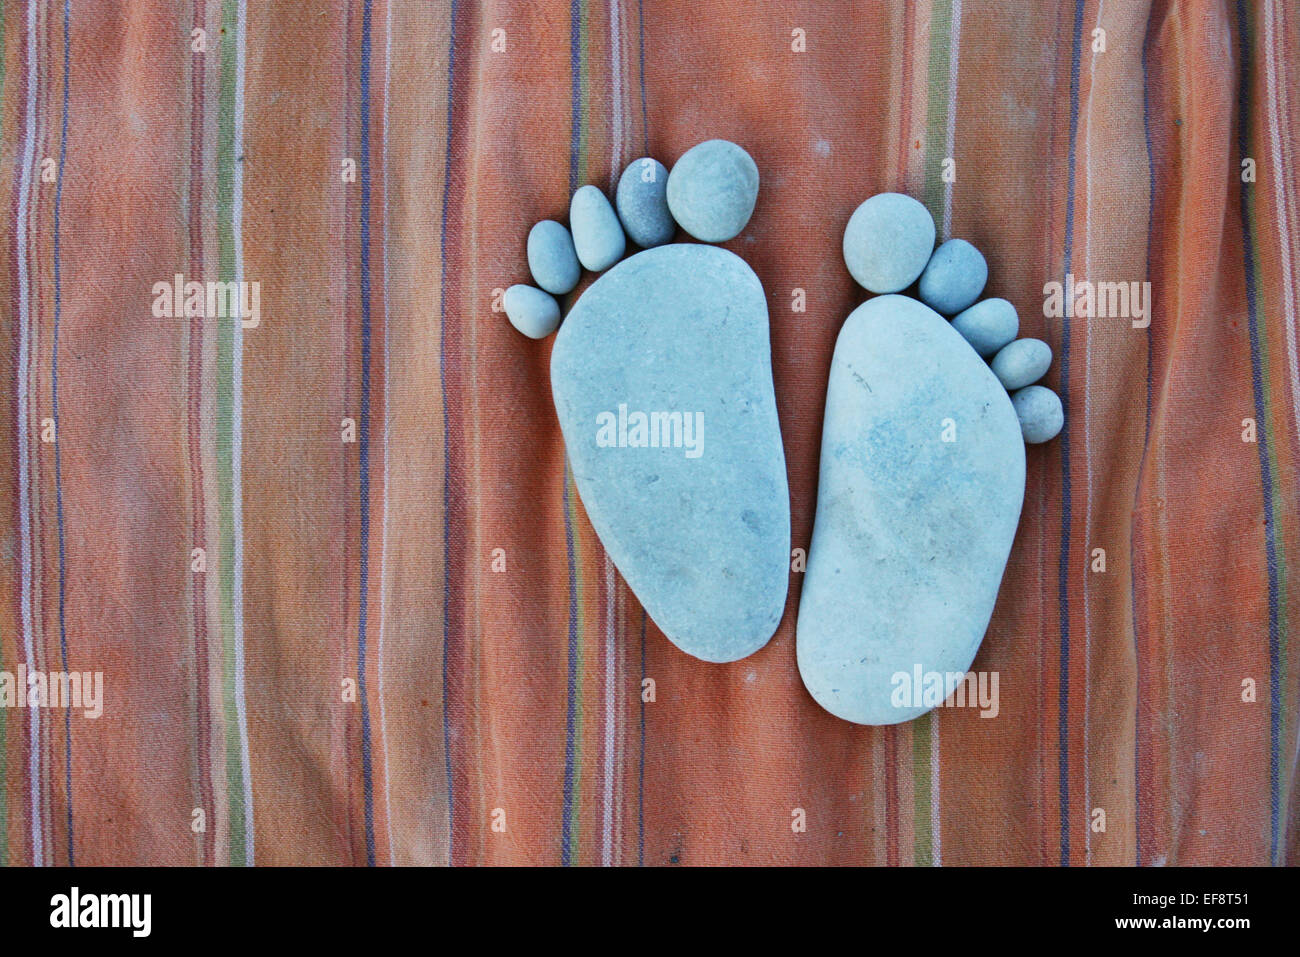 Stones laid out in shape of feet - Stock Image